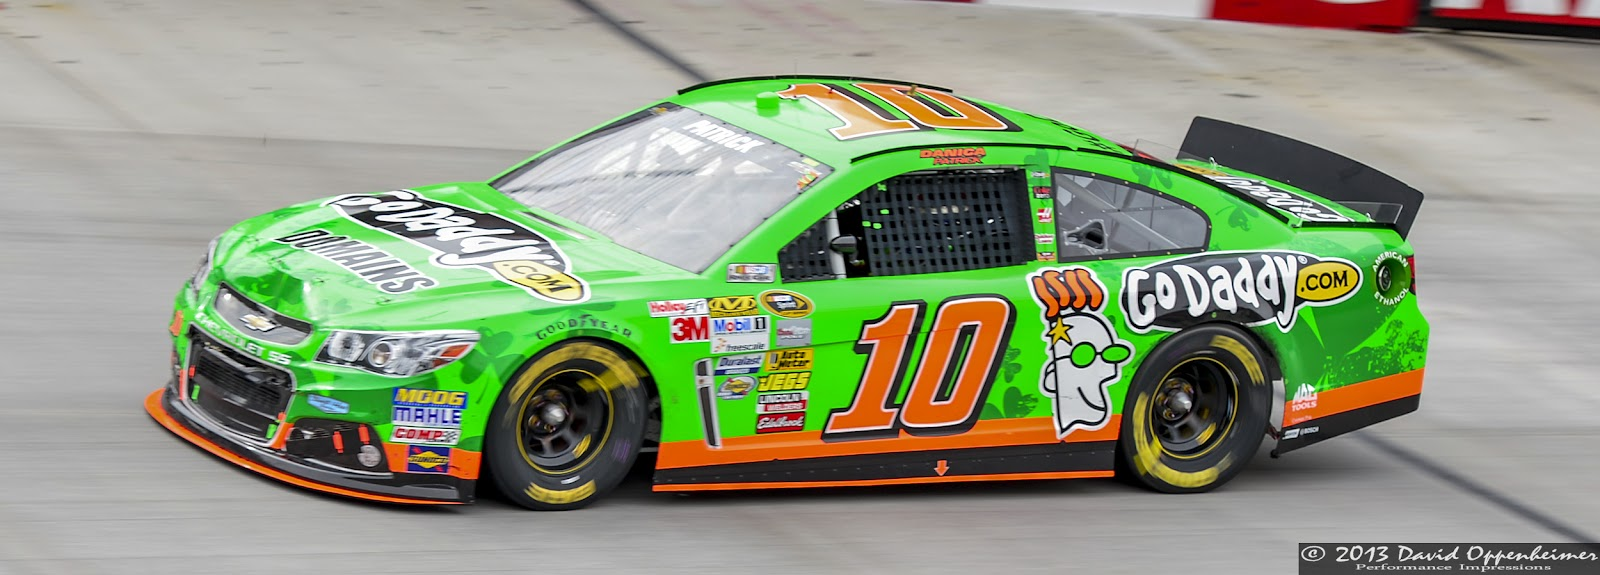 Danica Patrick at Bristol Motor Speedway during NASCAR Sprint Cup Food City 500